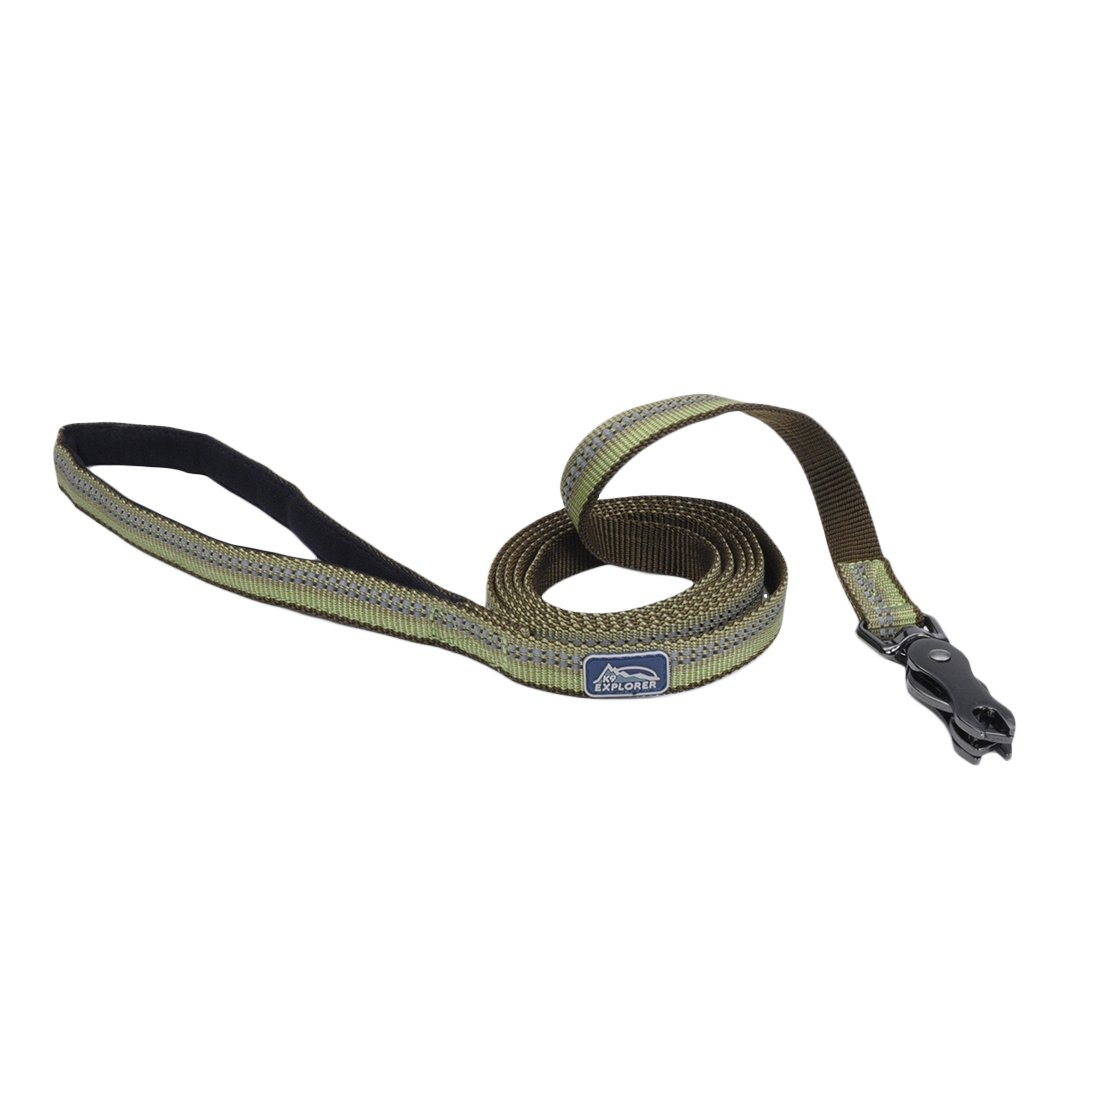 k9-explorer-dog-leash-fern